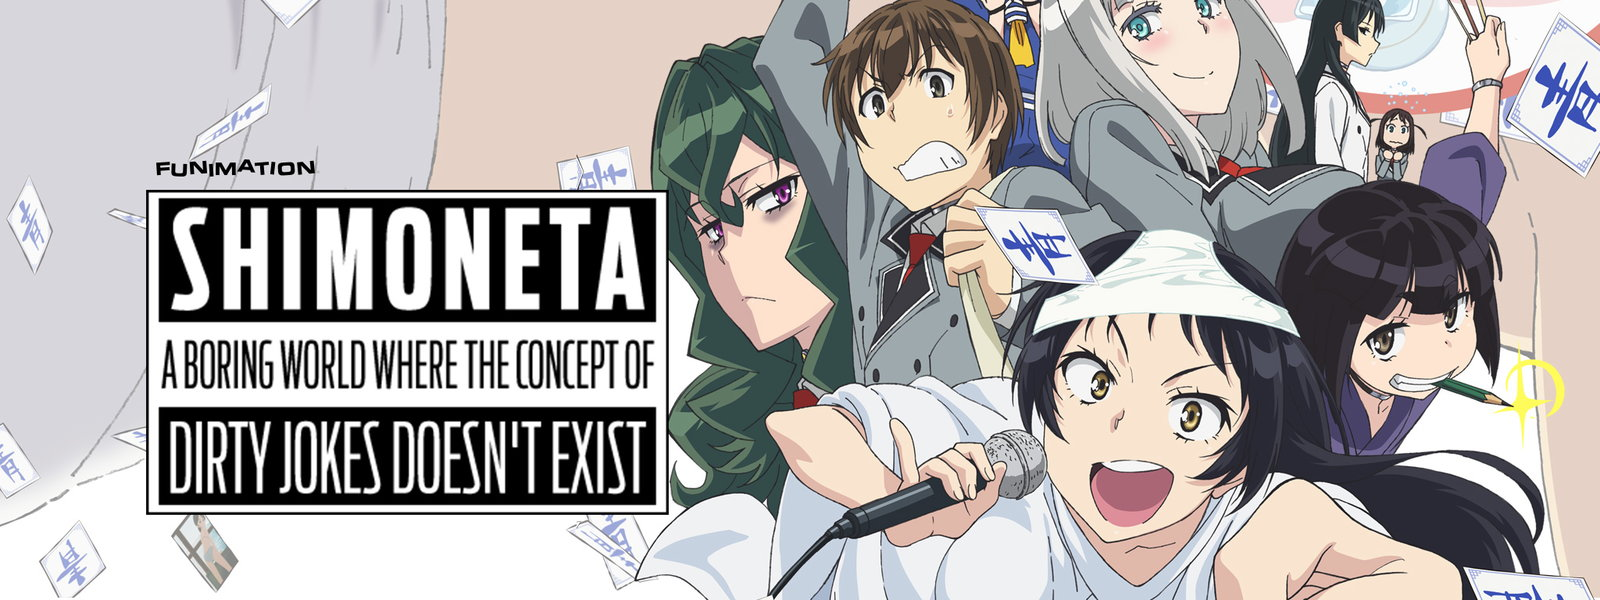 Anime Lewdness Porn shimoneta: a boring world where the concept of dirty jokes